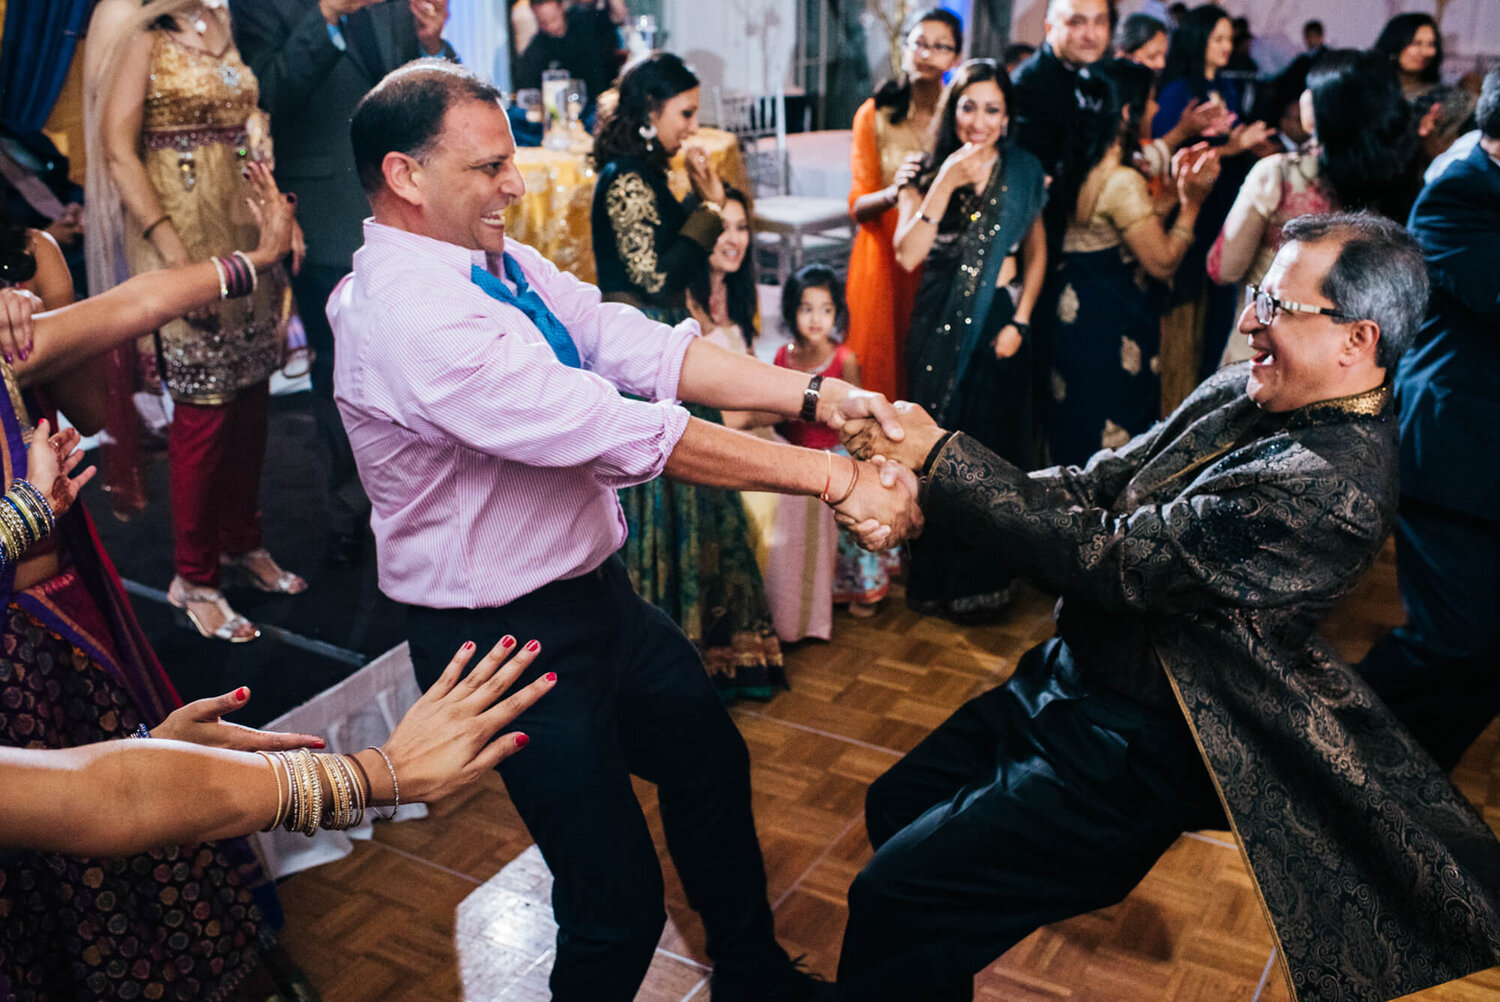 26-indian-wedding-marriot-grand-st-louis-mo-dancing.jpg